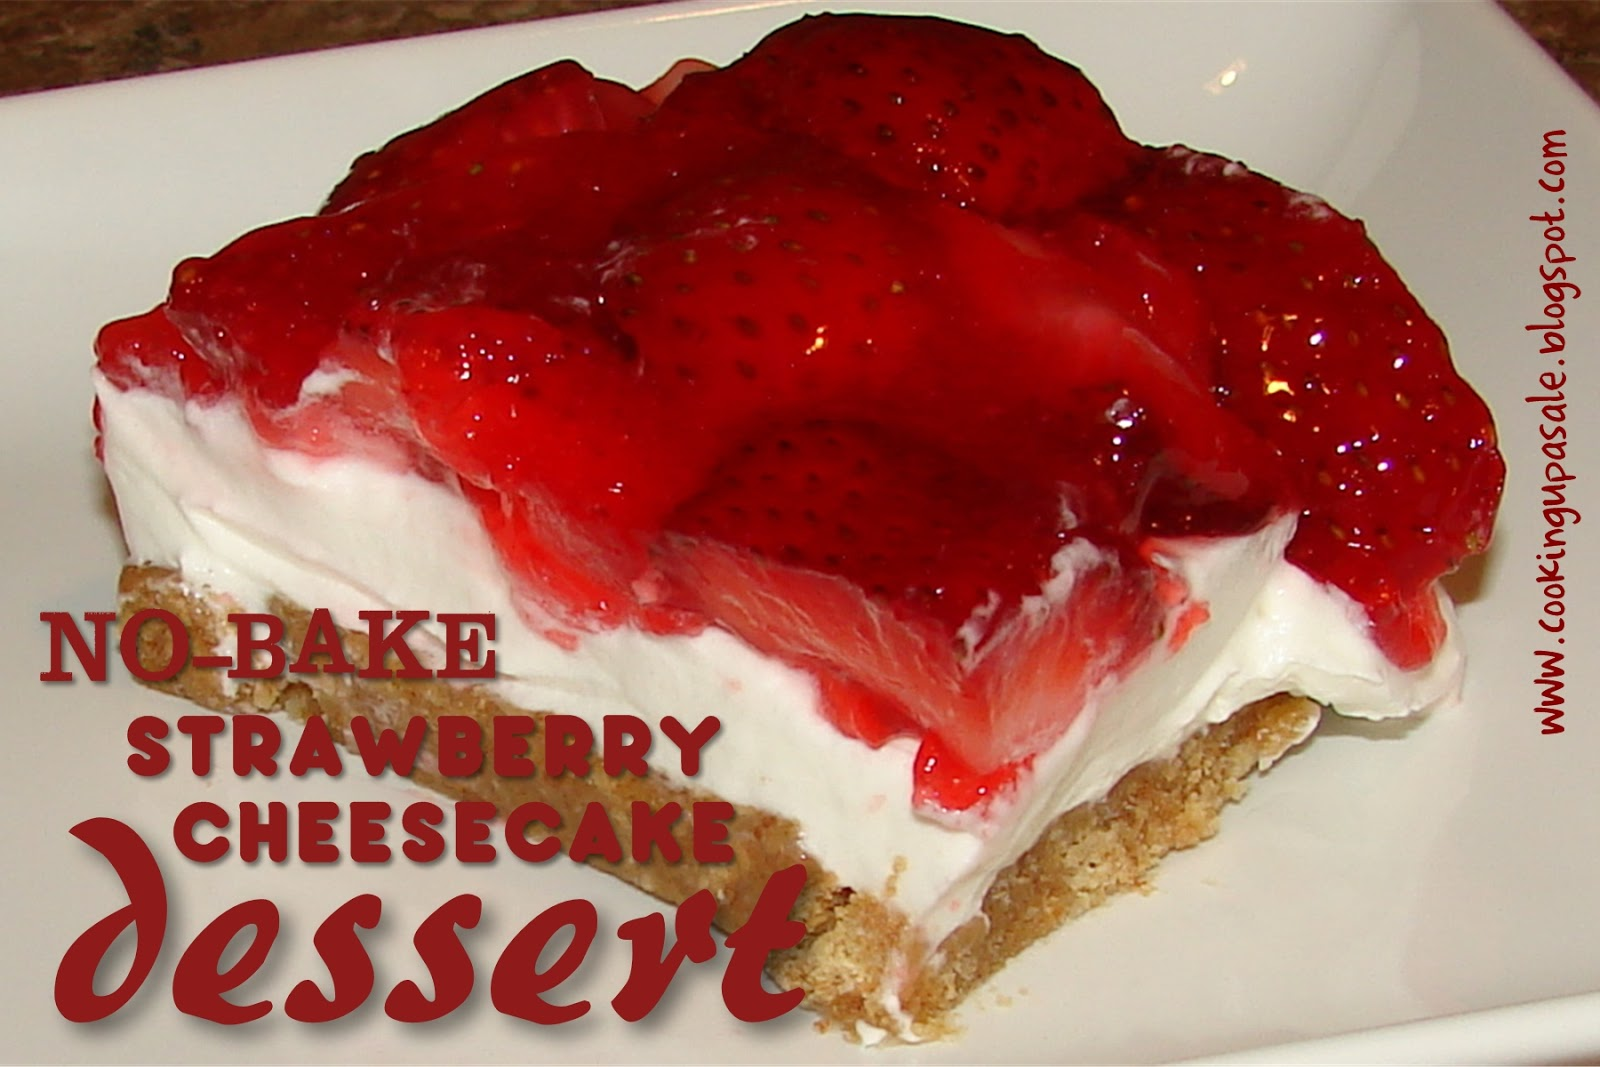 Cooking Up a Sale: NoBake Strawberry Cheesecake Dessert